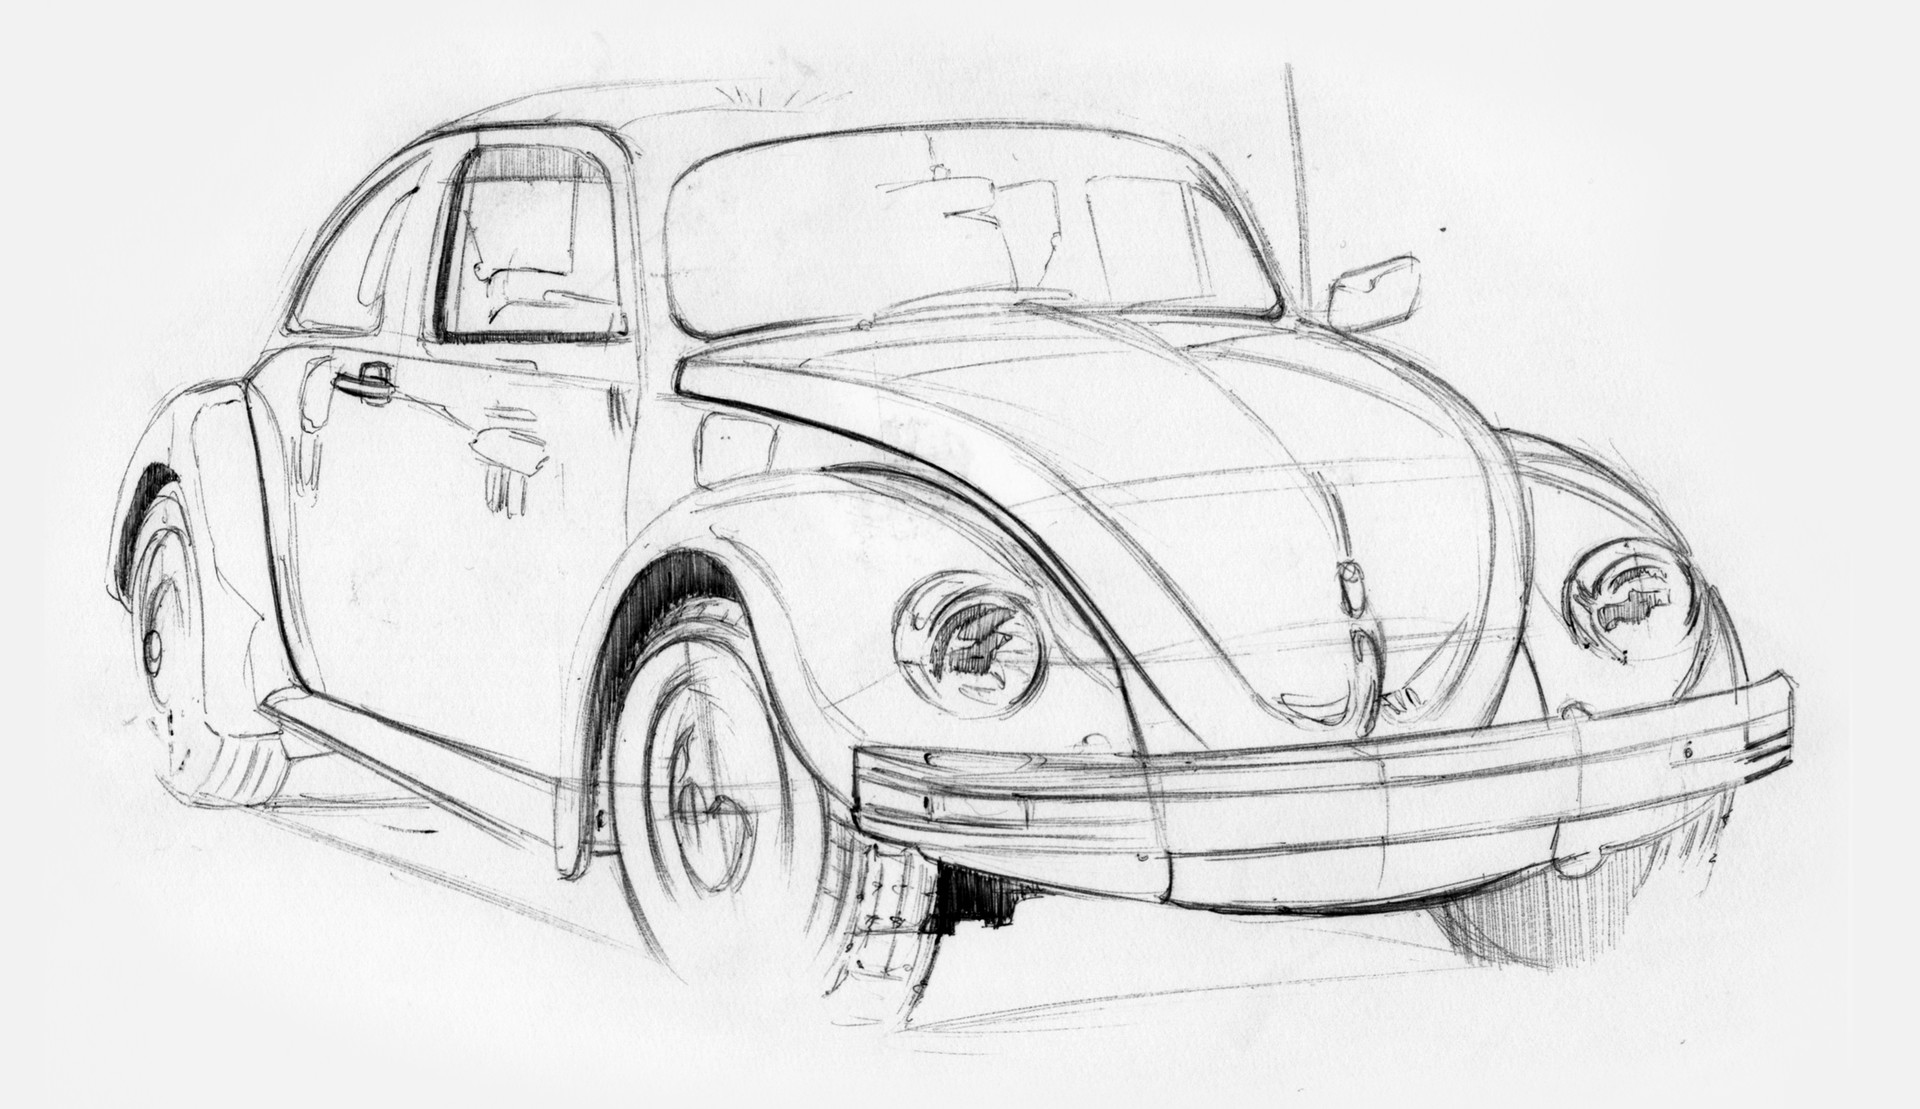 Vw Beetle Sketch At Paintingvalley Com Explore Collection Of Vw Beetle Sketch